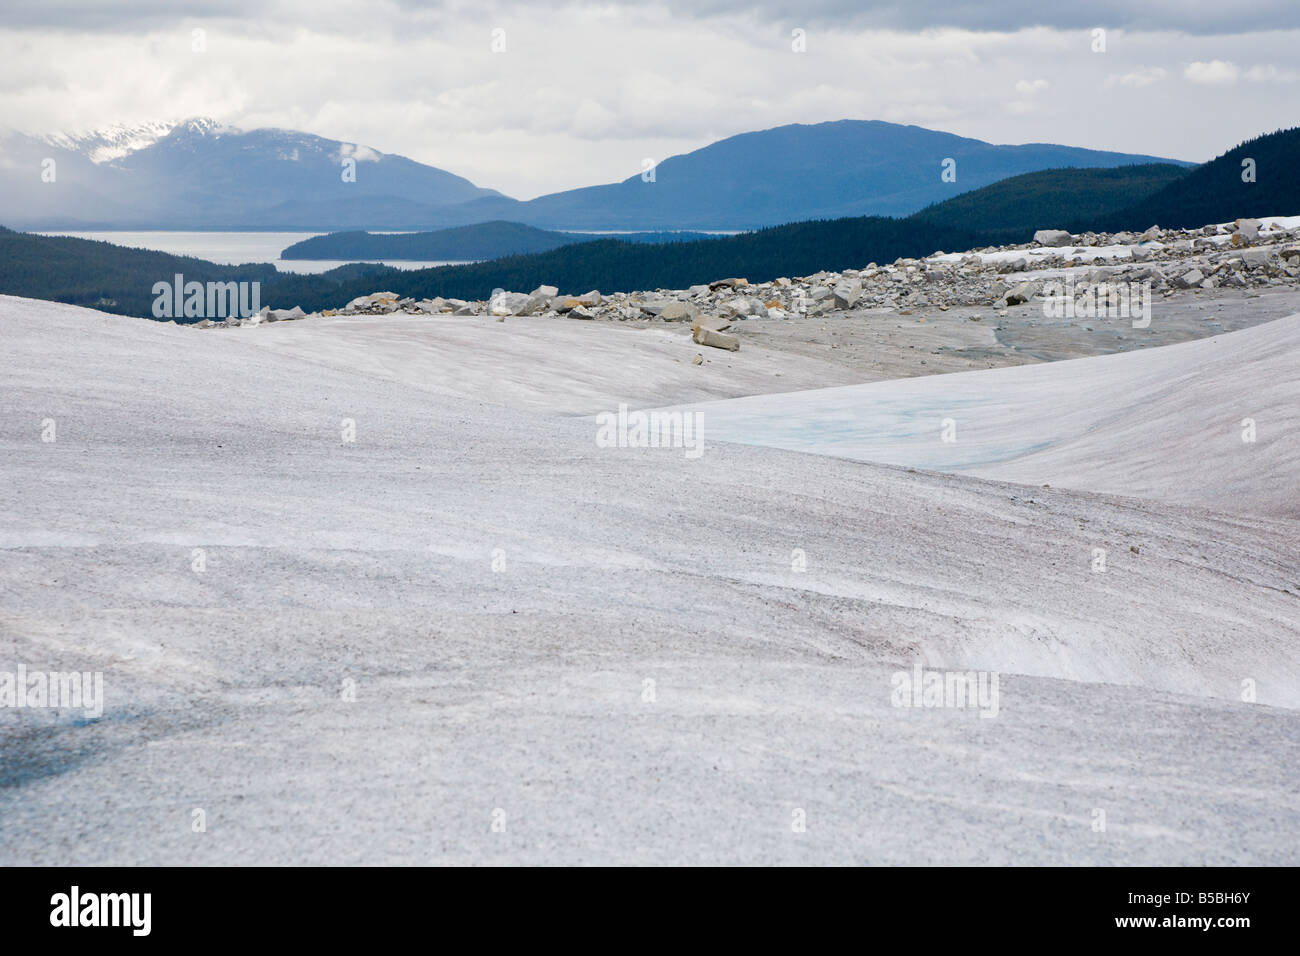 Waves of ice form the top of Mendenhall Glacier near Juneau, Alaska - Stock Image